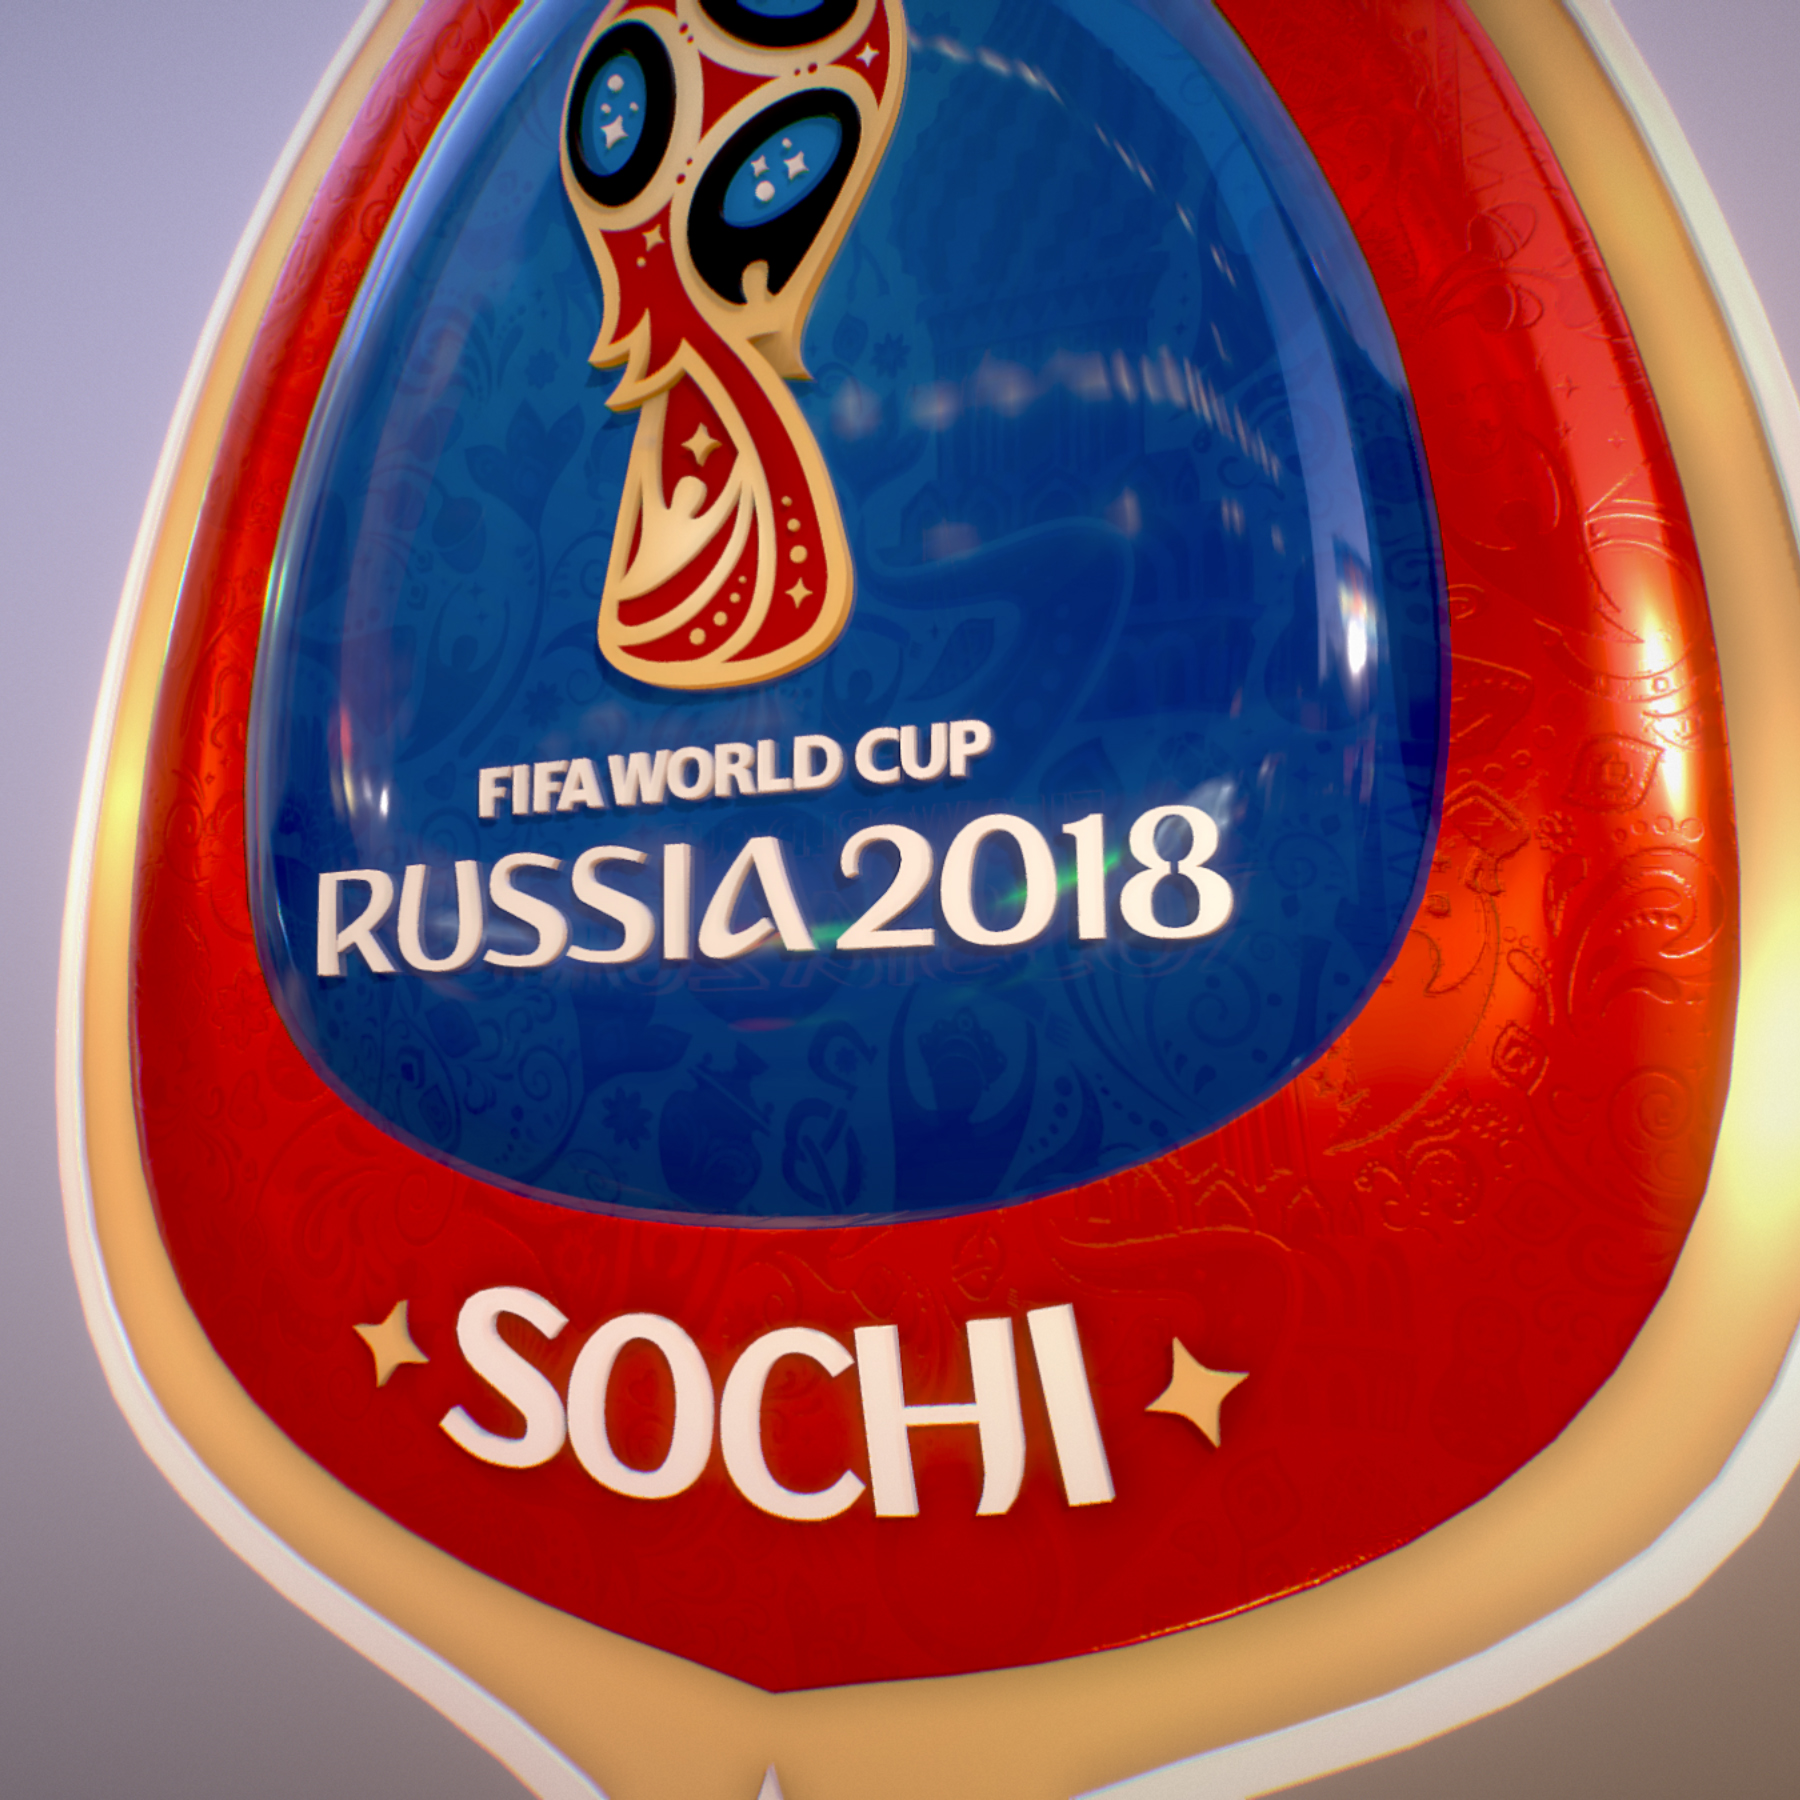 sochi host city world cup russia 2018 symbol 3d model max  fbx ma mb obj 271717